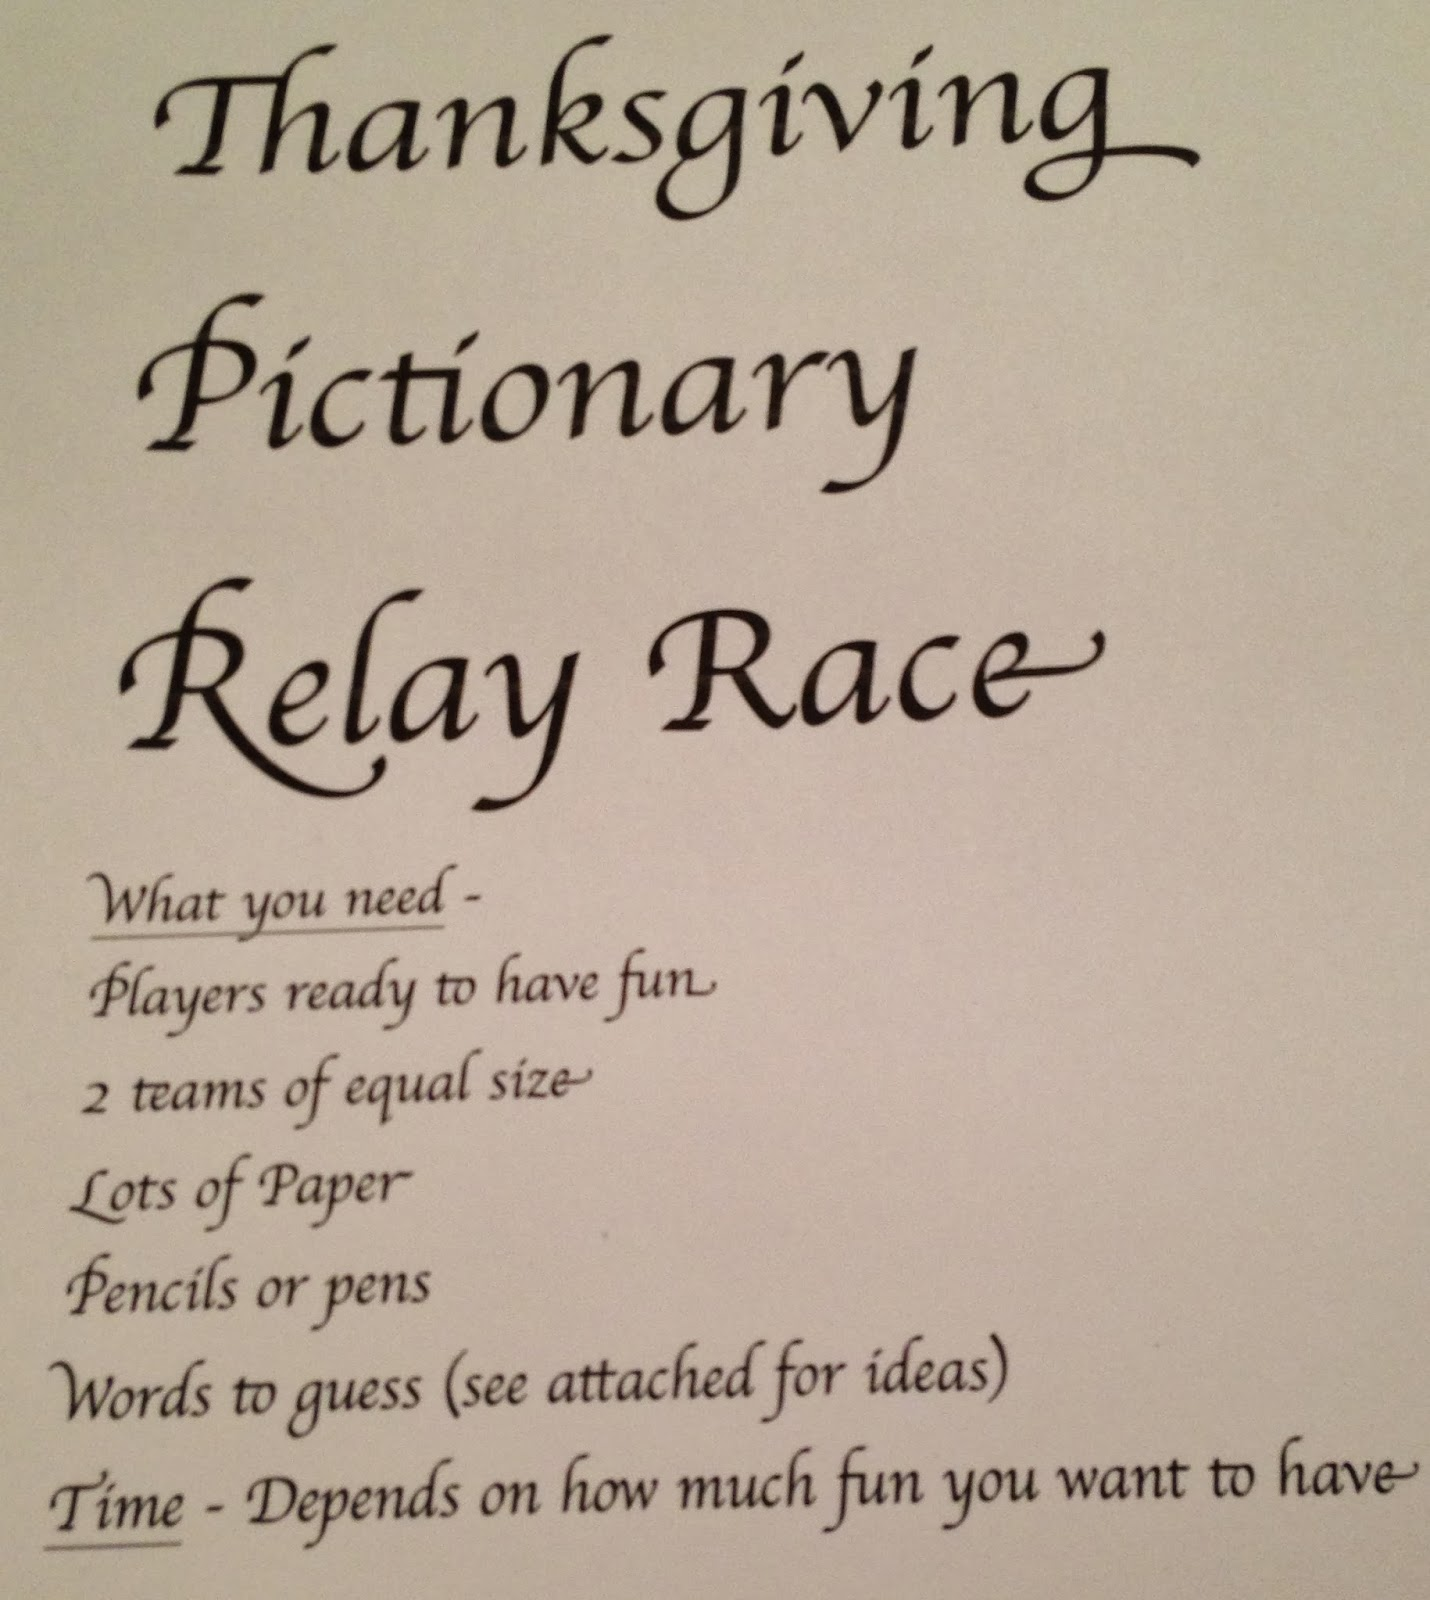 hope floats and more thanksgiving family pictionary relay race